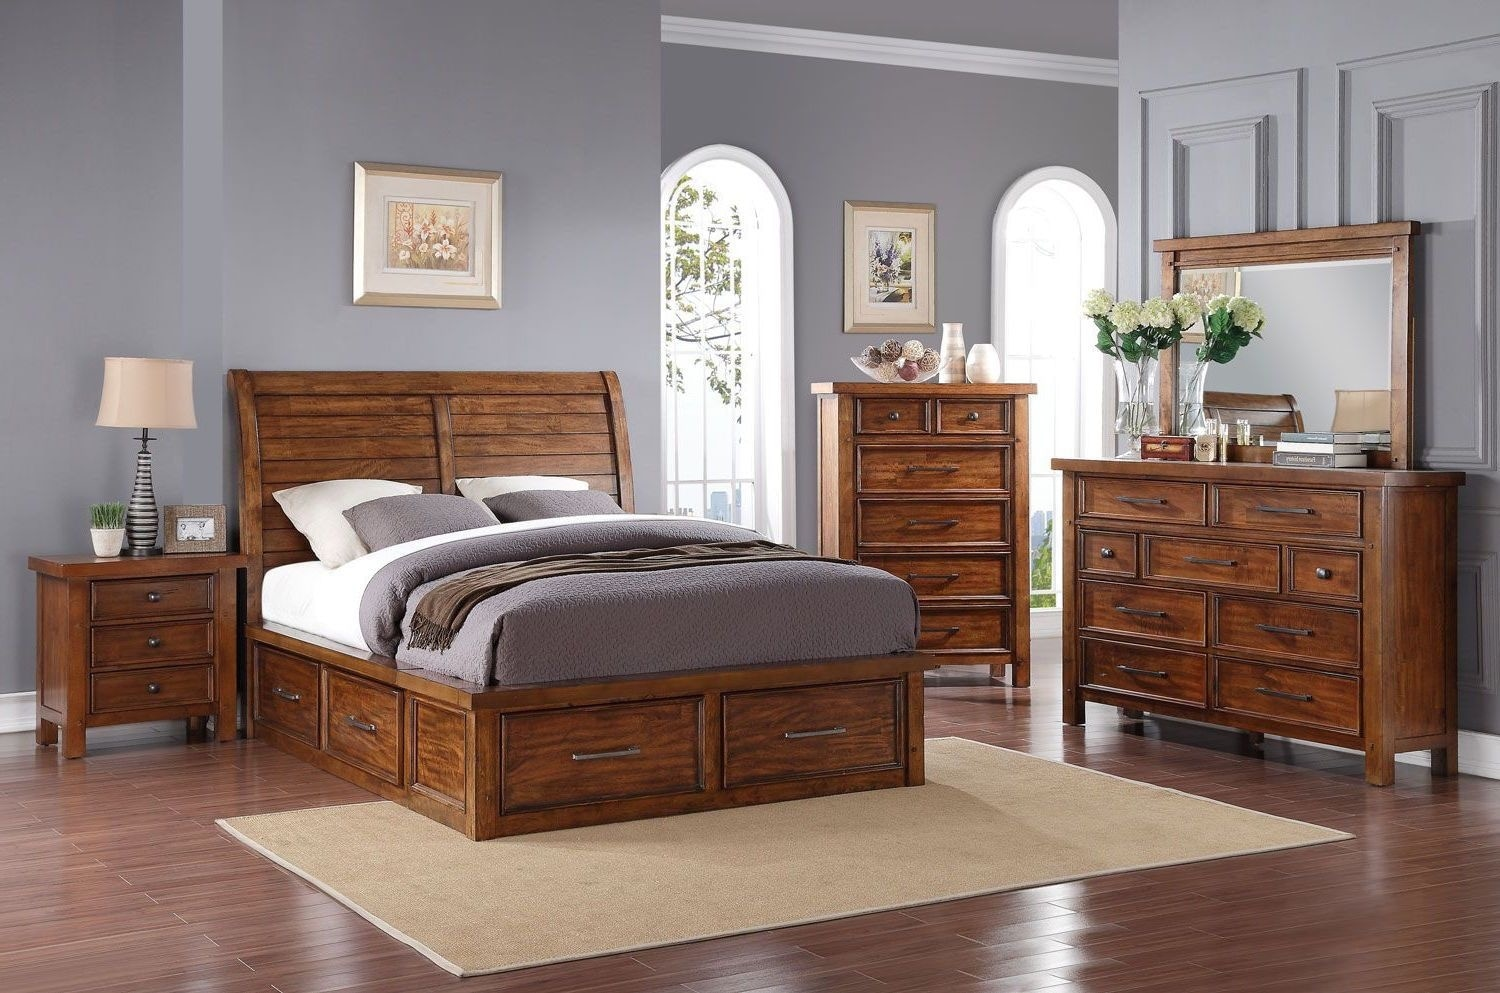 Bedroom Furniture - Sonoma 6-Piece King Storage Bedroom Package – Medium Brown